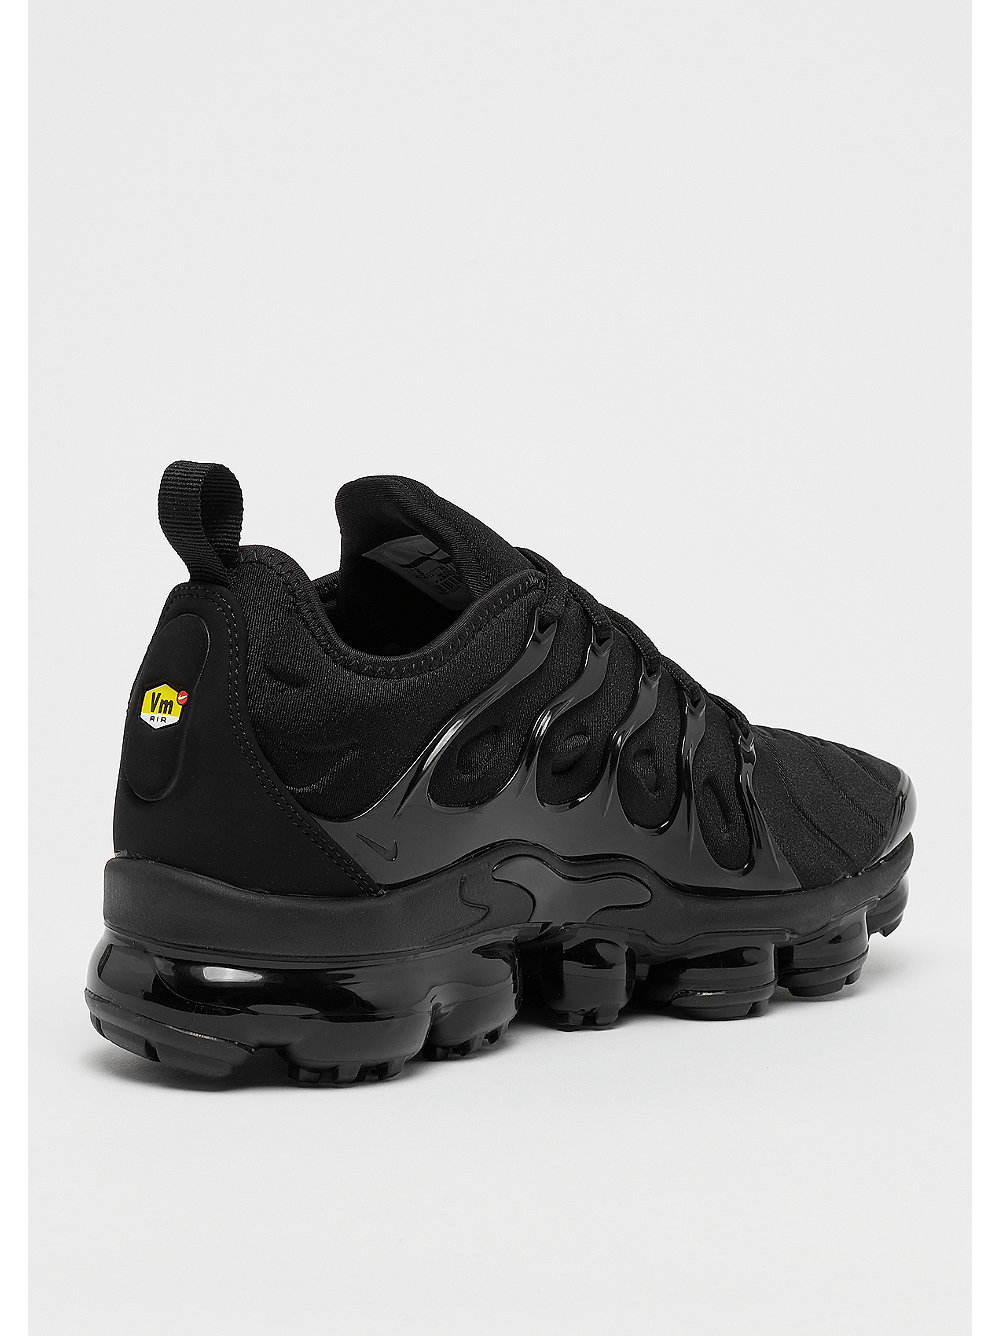 Air VaporMax Plus black/black/dark grey